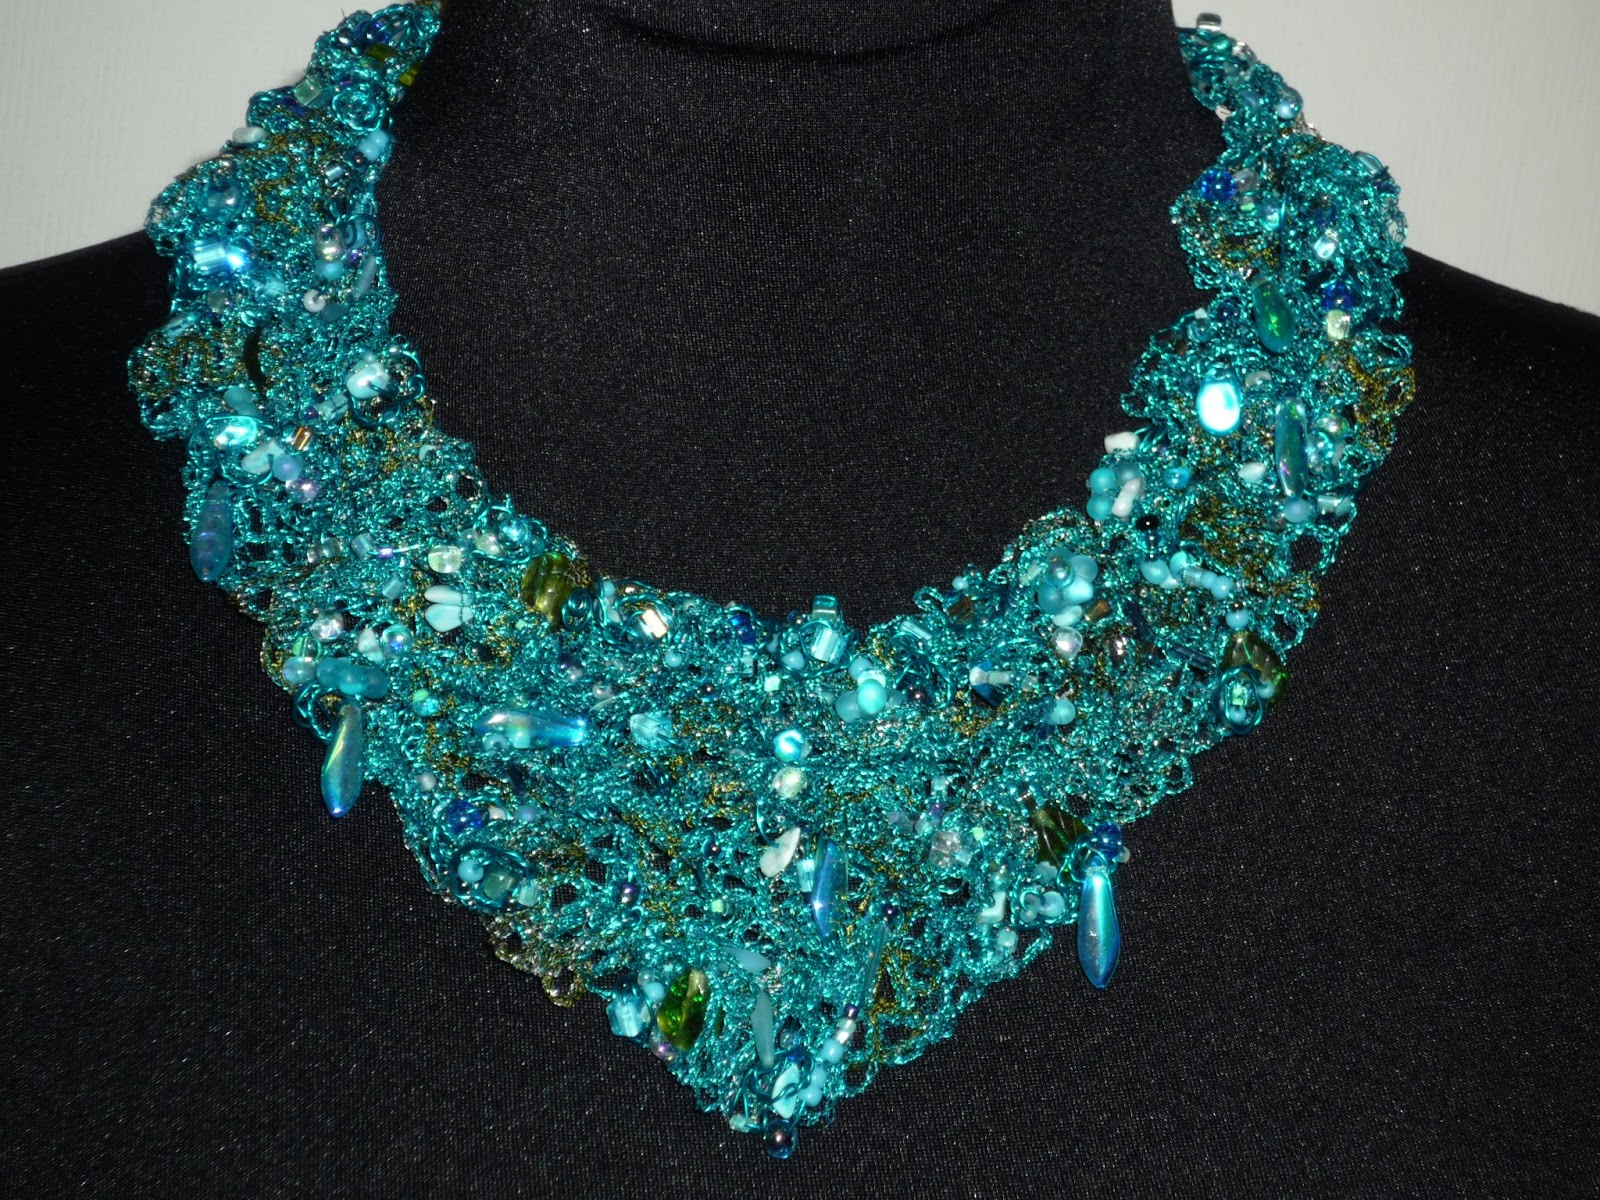 collage textile fiber necklace fabric and jewelry design inspiration nunn